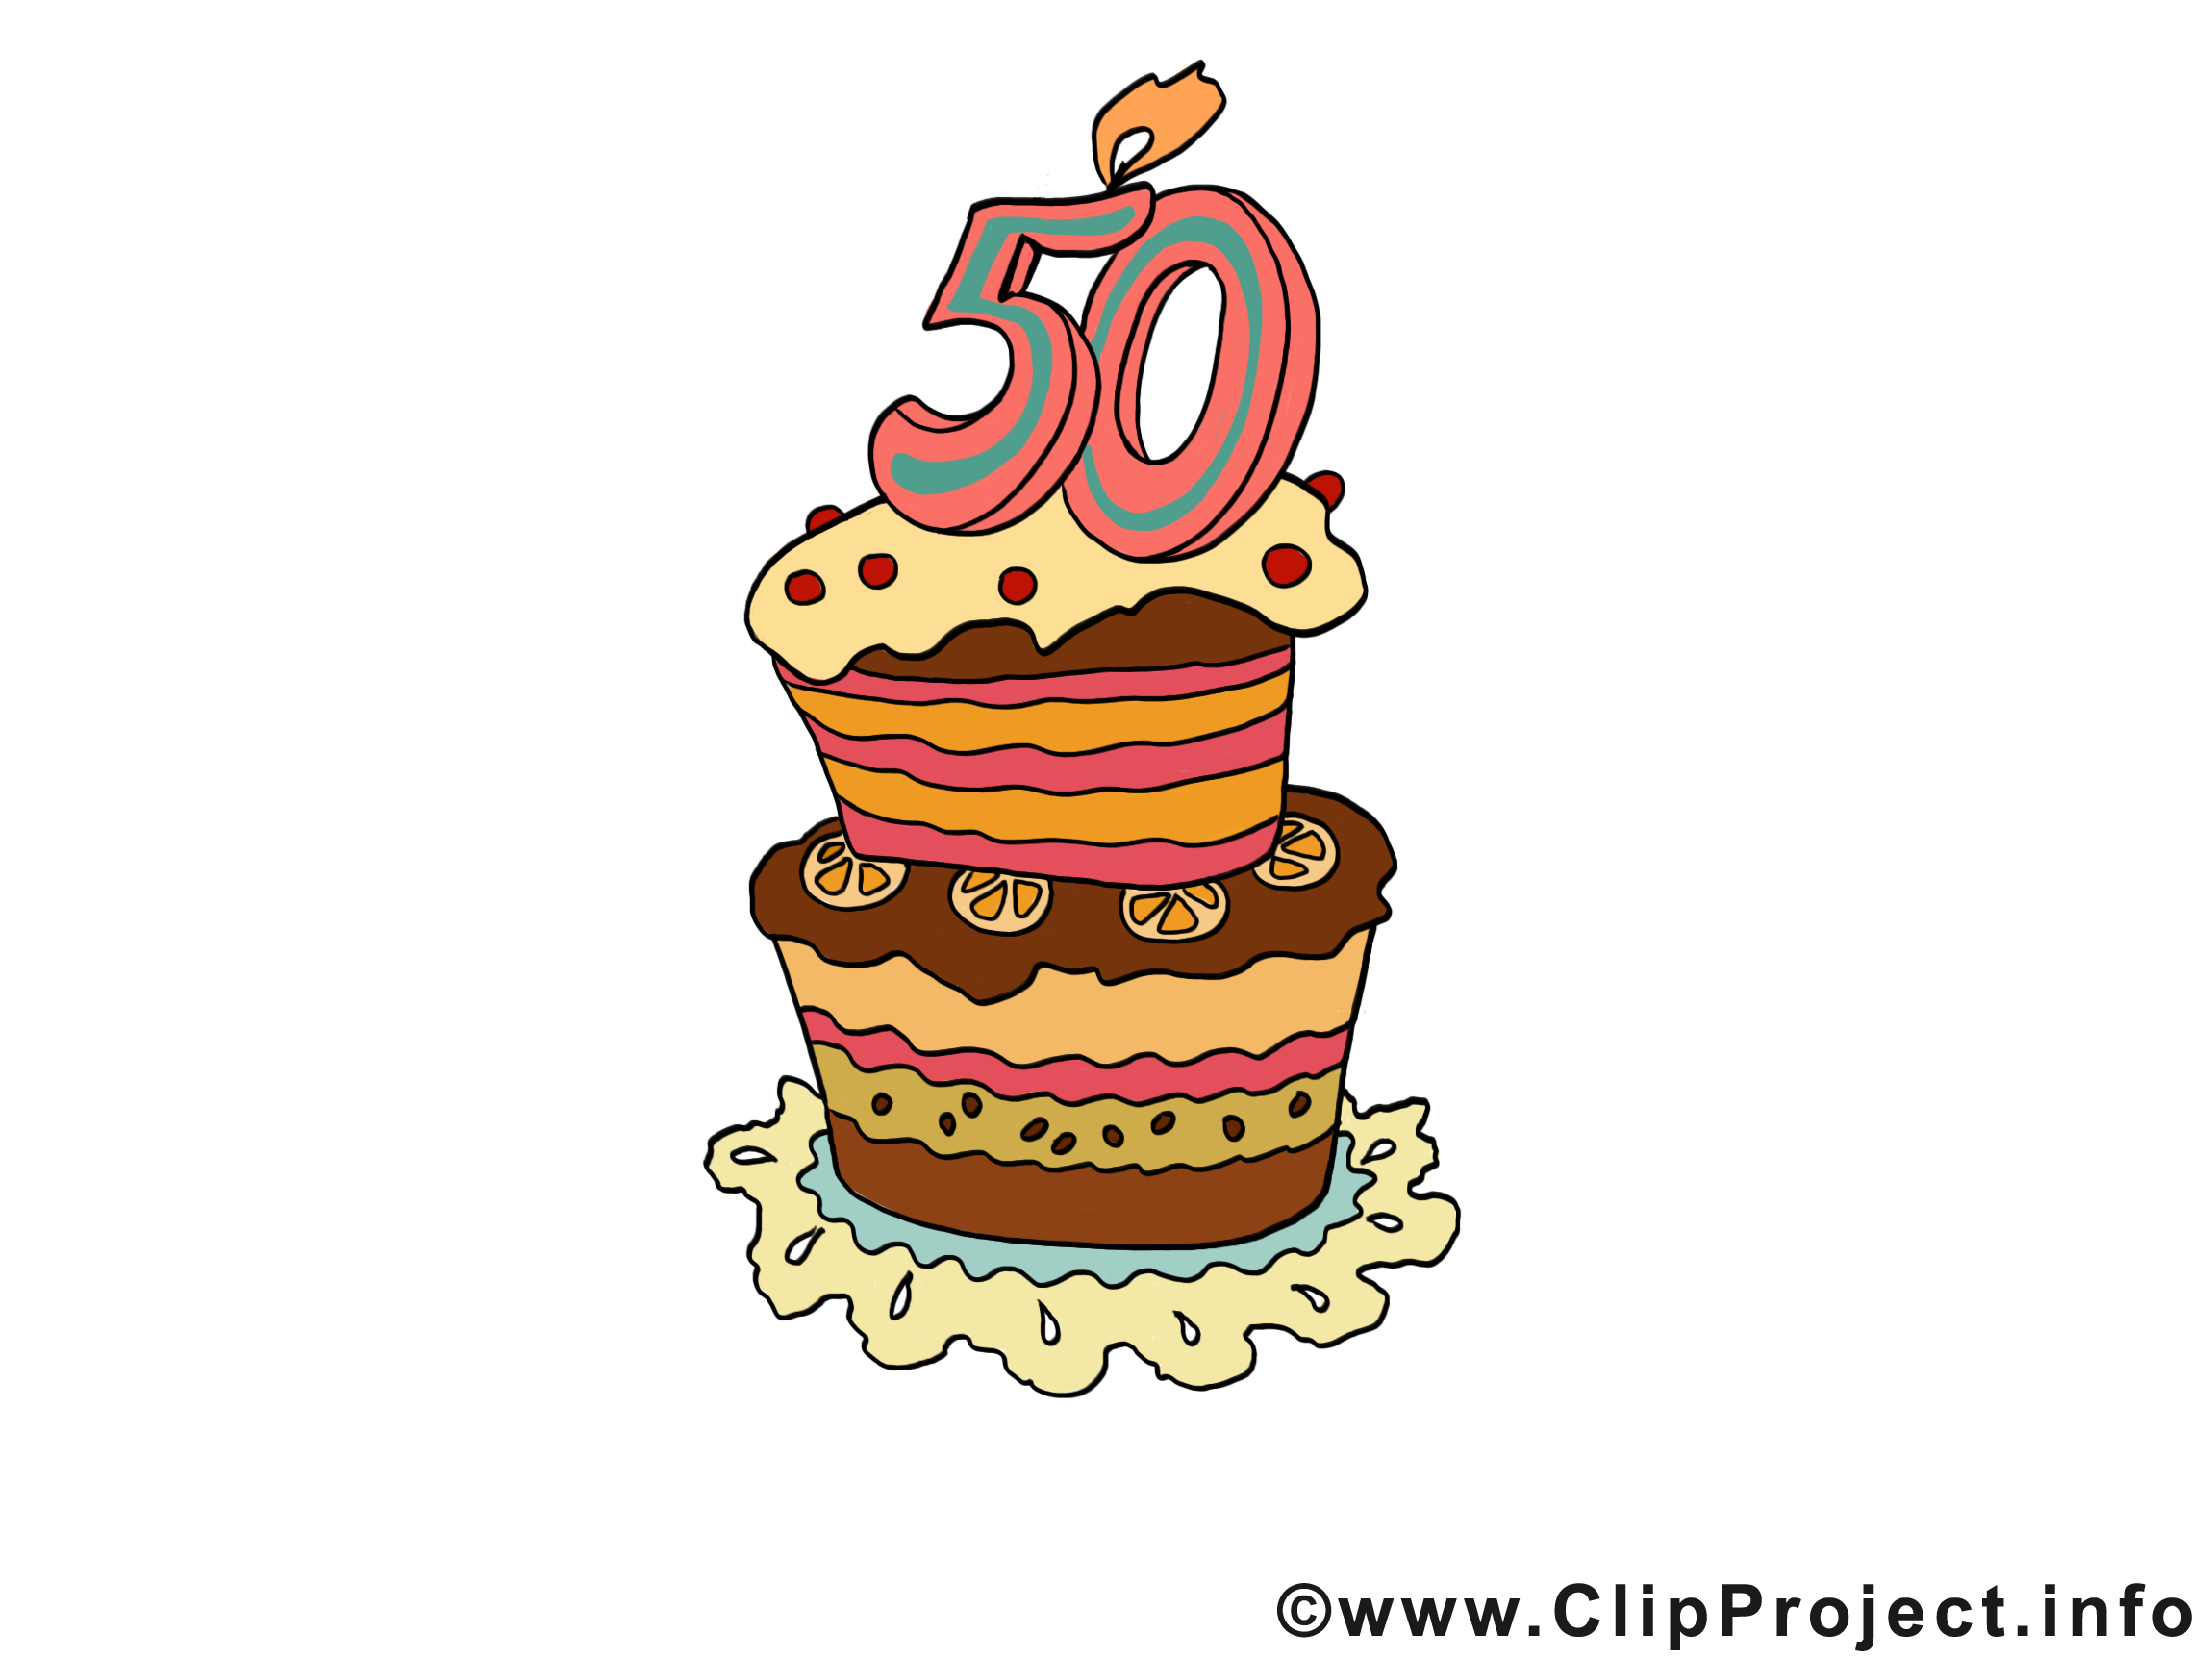 dessin gateau anniversaire 50 ans secrets culinaires g teaux et p tisseries blog photo. Black Bedroom Furniture Sets. Home Design Ideas